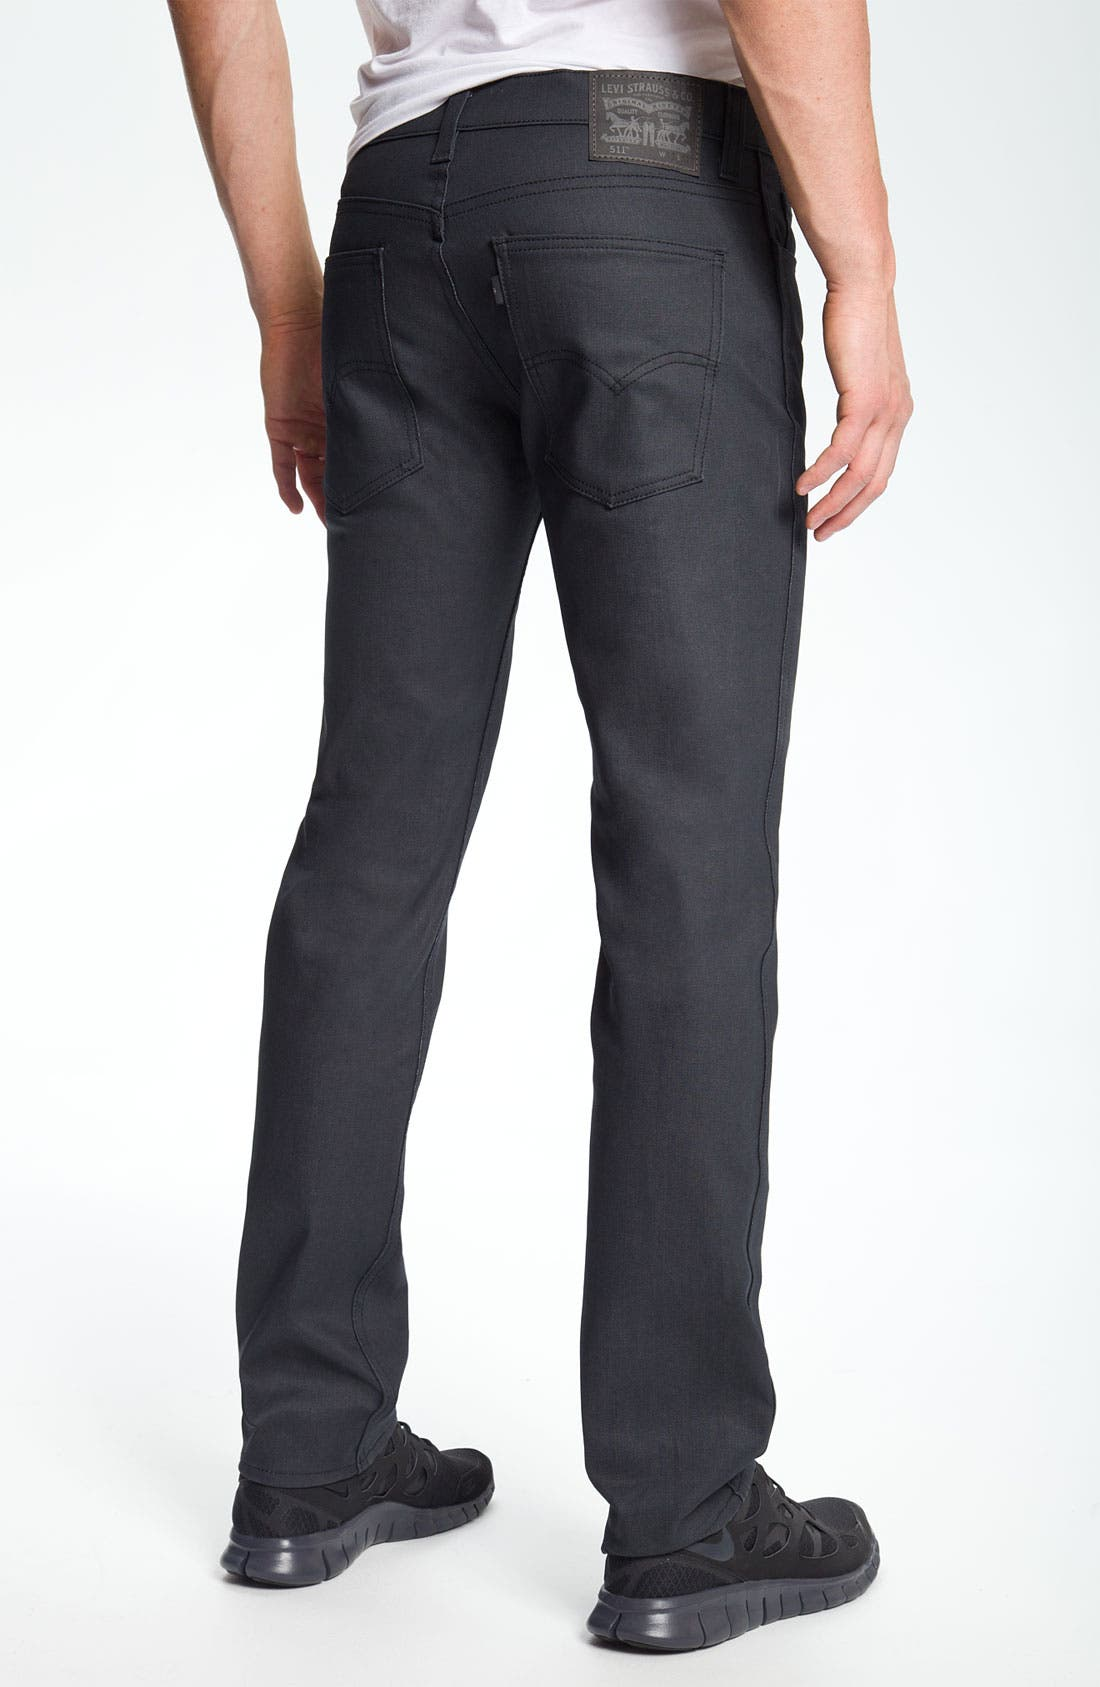 Alternate Image 1 Selected - Levi's® '511' Slim Fit Jeans (Anthracite)